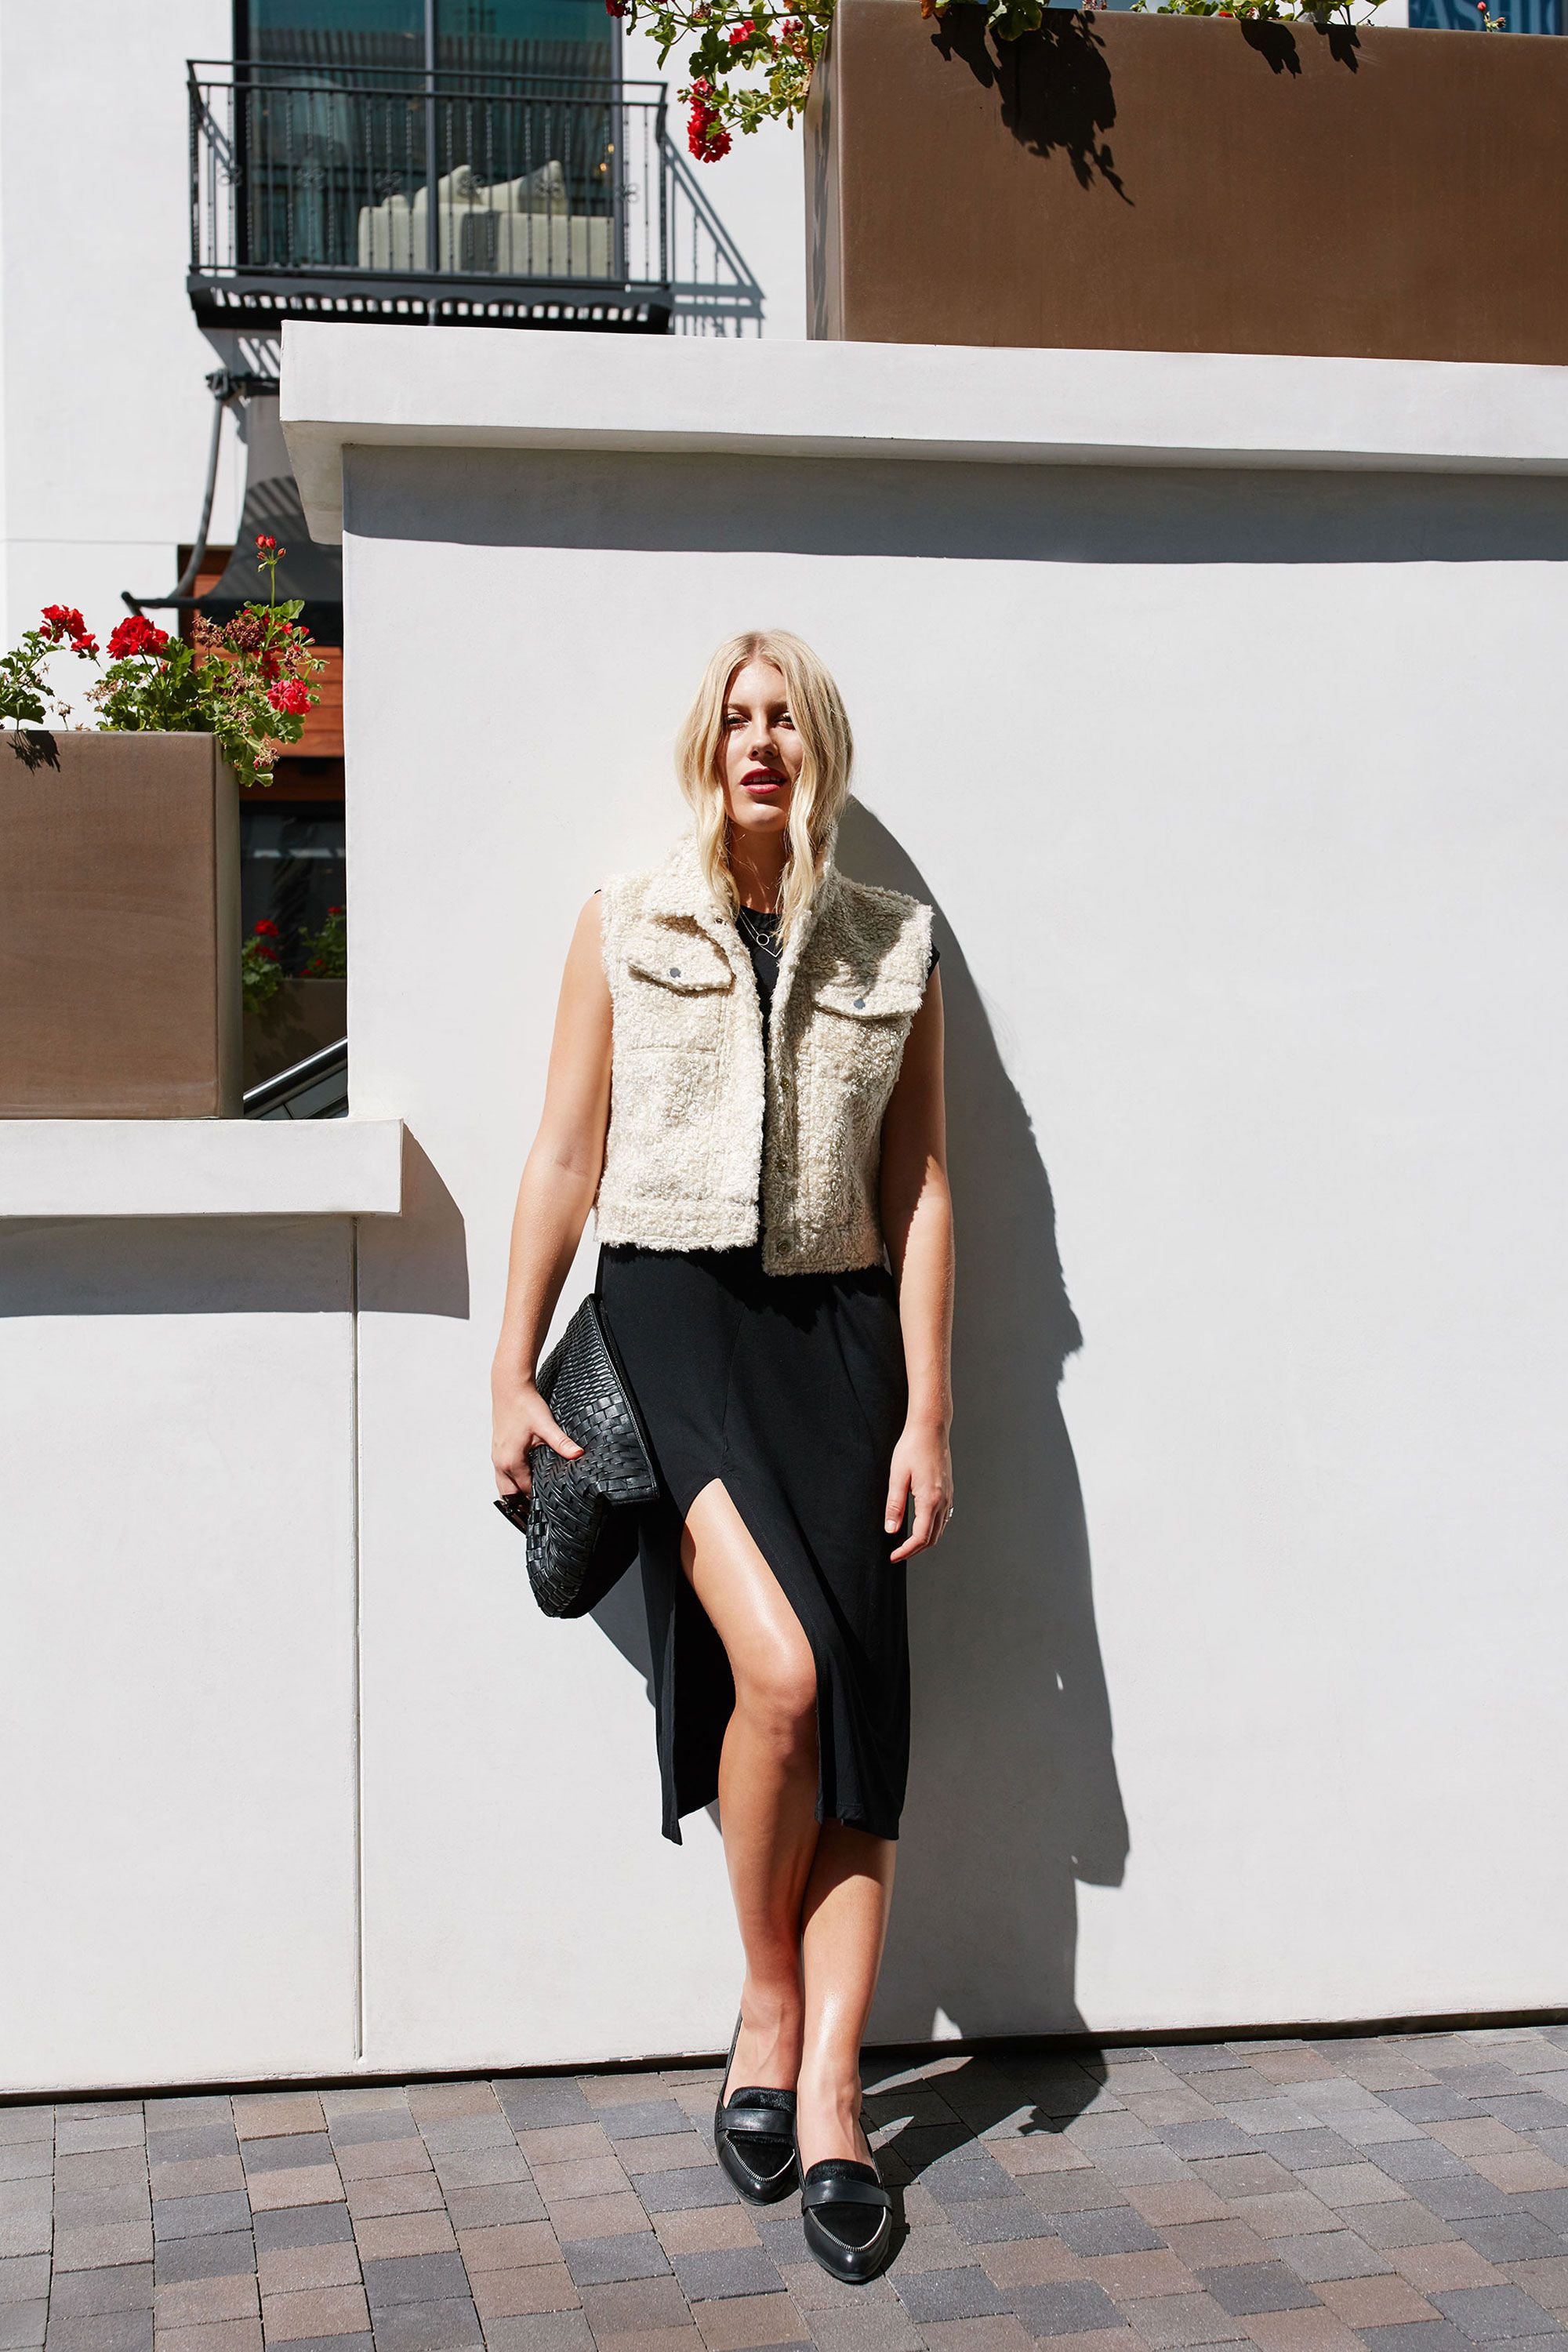 "<p>Pop on a contrasting piece of outerwear—like this nubby cropped vest—to break up the single continuous line. The layer defines your torso while highlighting mile-long legs. </p><p><br></p><p><em data-redactor-tag=""em"">Cinq à Sept Cora Shearling Fur-Patch Vest, $1,295, <a href=""http://www.neimanmarcus.com/Cinq-Sept/prod193340085_cat59990775__/p.prod?icid=&searchType=EndecaDrivenCat&rte=%252Fcategory.jsp%253FitemId%253Dcat59990775%2526pageSize%253D120%2526Nao%253D0%2526refinements%253D&eItemId=prod193340085&cmCat=product"" target=""_blank"">neimanmarcus.com</a>; Kate Spade New York Corina Pointy Toe Loafers, $250, <a href=""http://shop.nordstrom.com/s/kate-spade-new-york-corina-pointy-toe-loafer-women/4174853"" target=""_blank"">nordstrom.com</a>; Loewe Large Logo Embossed Calfskin Leather Pouch, $650, <a href=""http://shop.nordstrom.com/s/loewe-large-logo-embossed-calfskin-leather-pouch/3963227"" target=""_blank"">nordstrom.com</a>; H&M 2-Pack Necklaces, $7.99, <a href=""http://www.hm.com/us/product/56800?article=56800-B"" target=""_blank"">hm.com</a></em></p>"